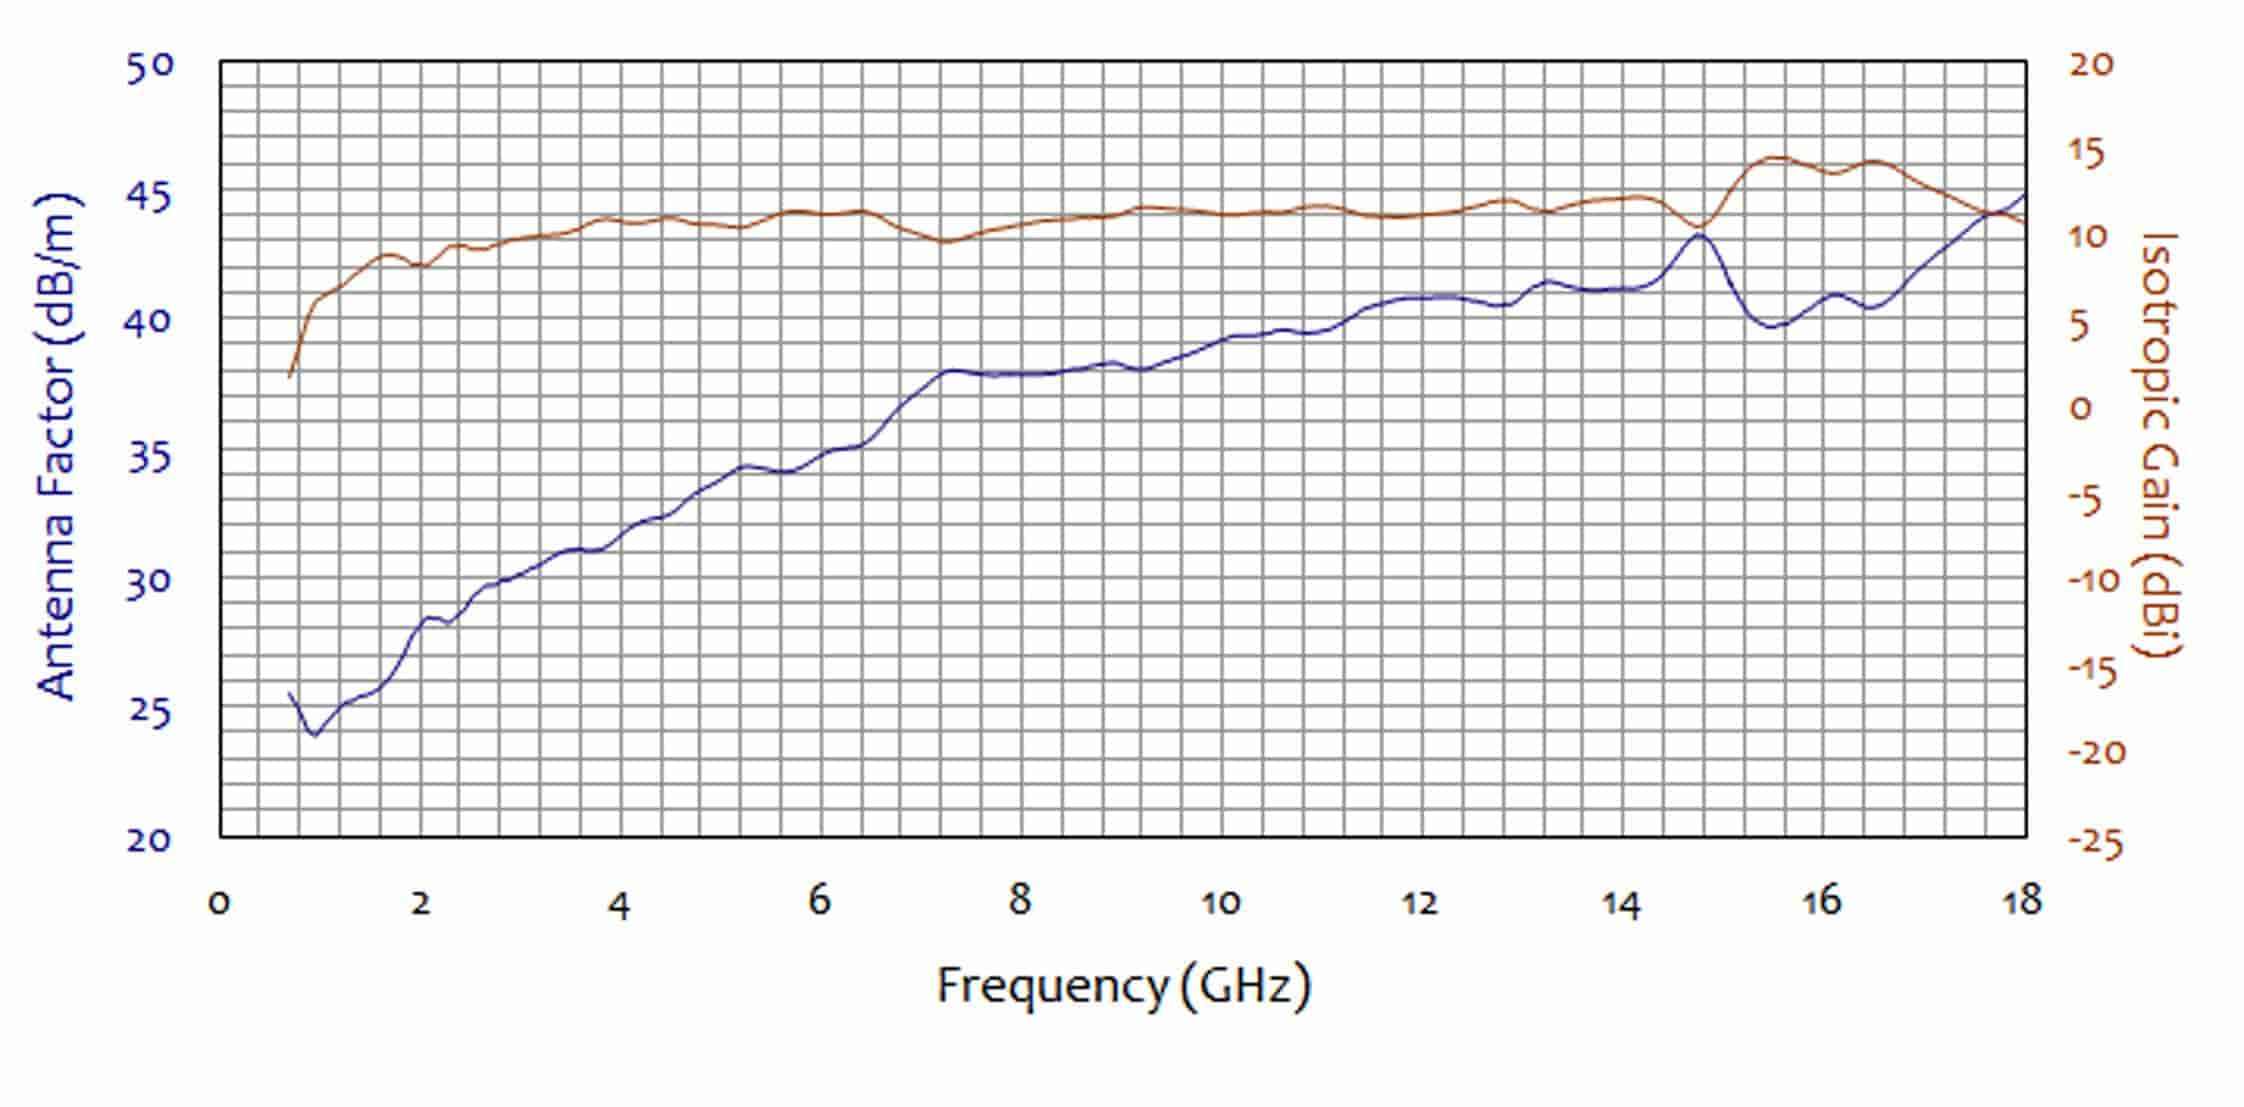 antenna factor frequency chart for double ridge active horn antenna 700 mhz to 18 ghz